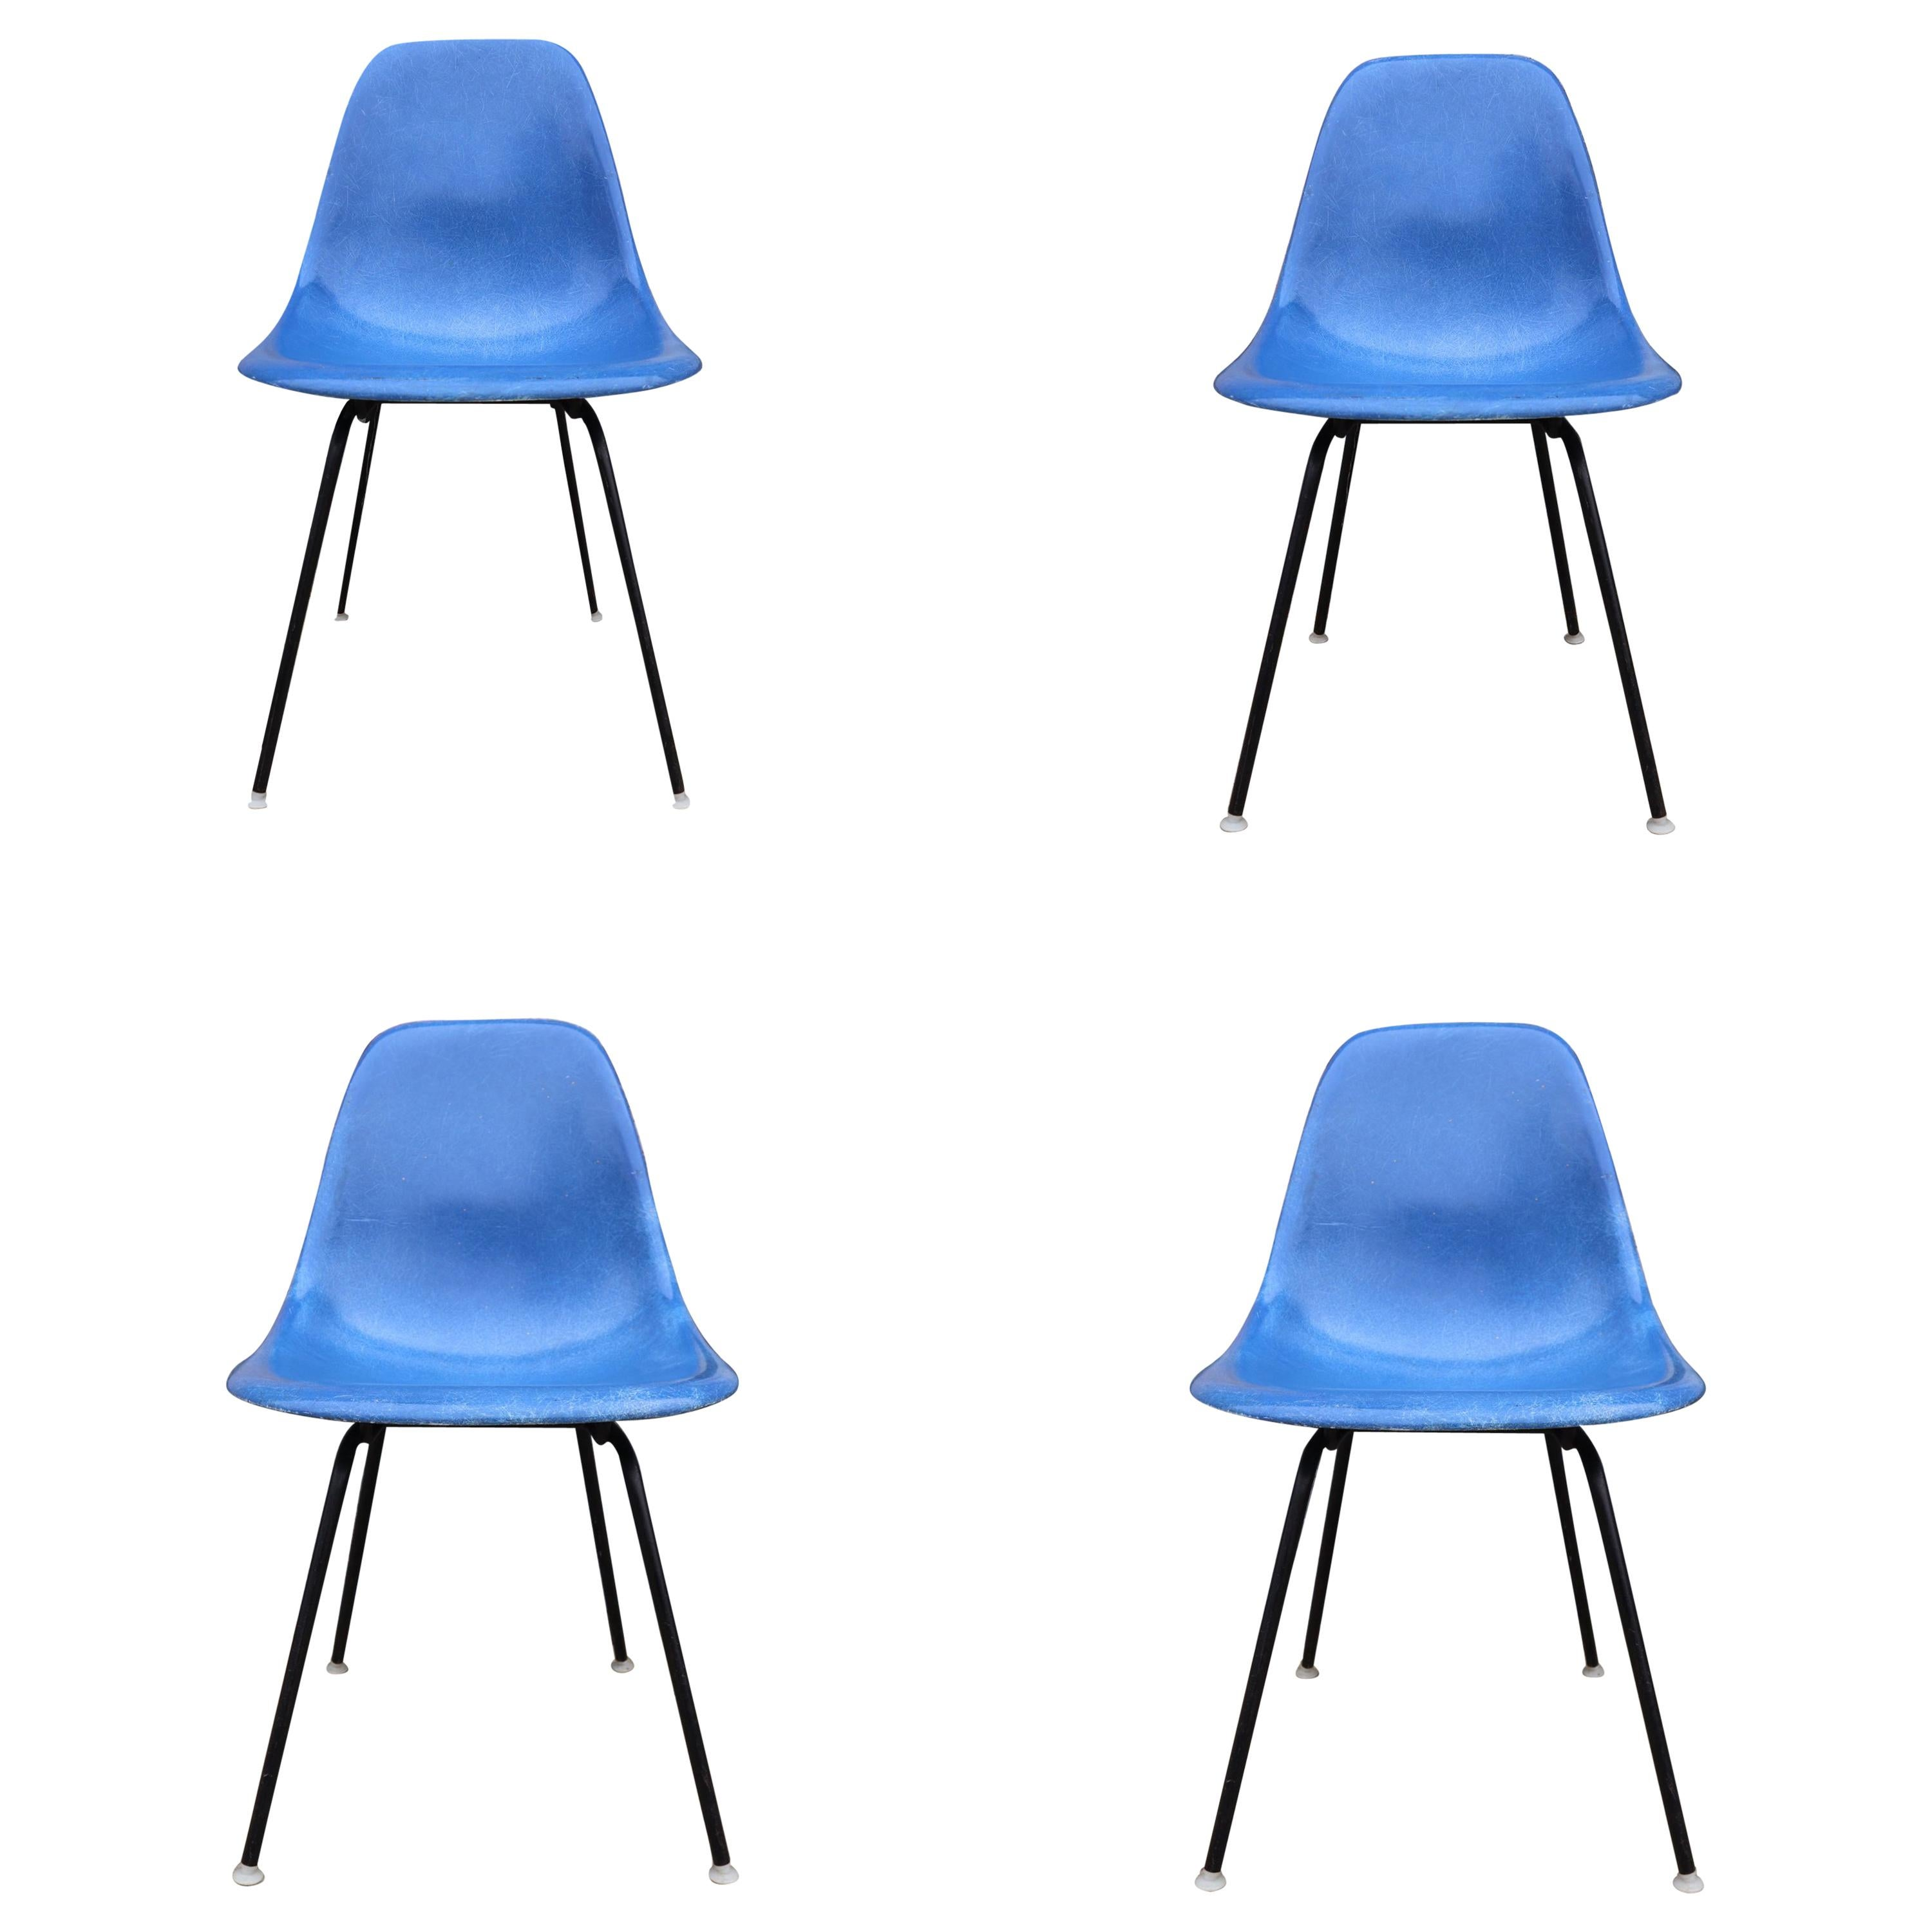 Set of 4 Herman Miller Eames Dining Chairs